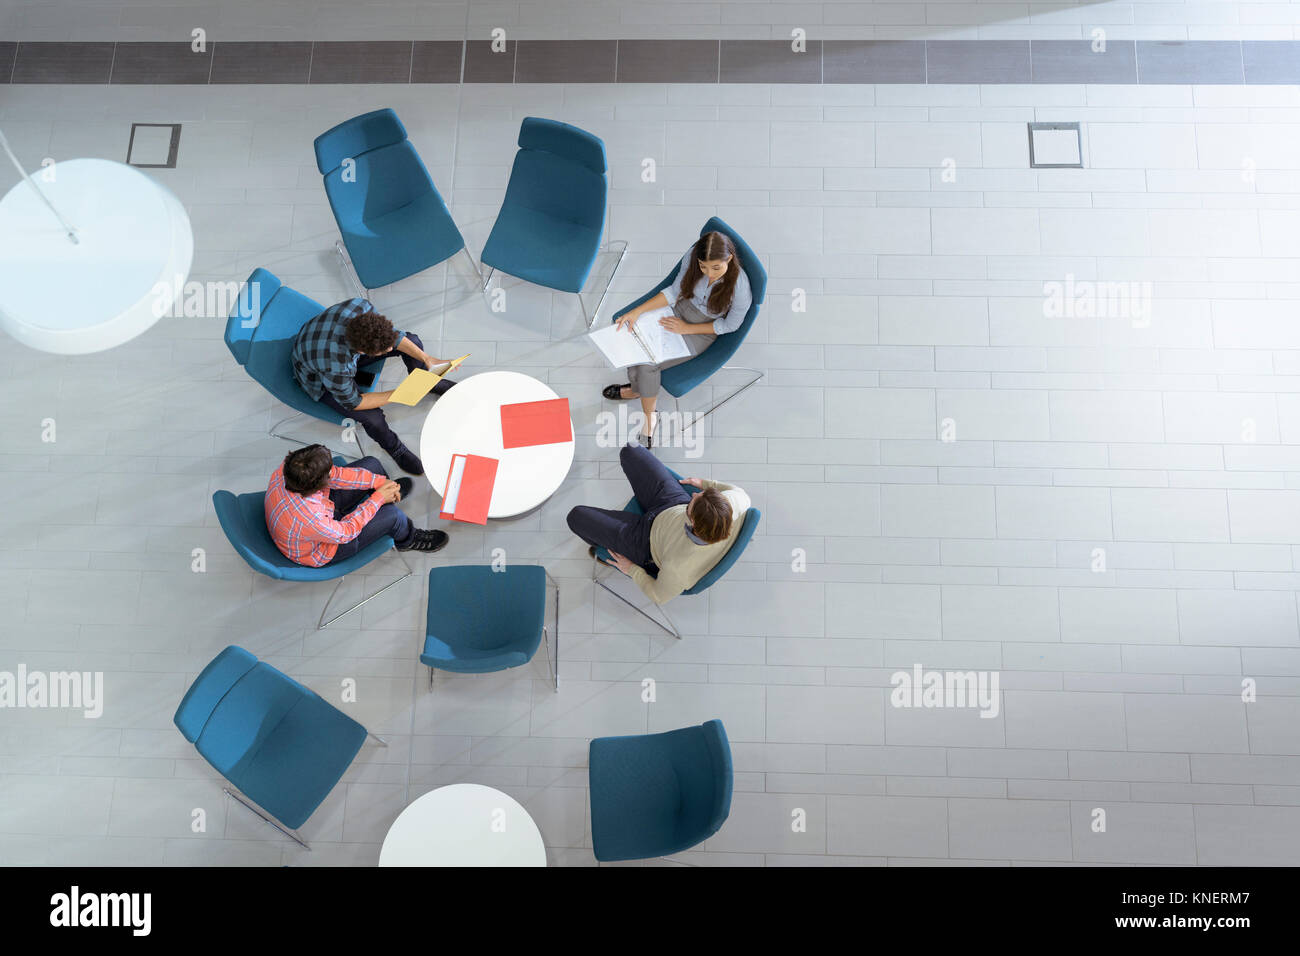 Overhead view of meeting in engineering facility - Stock Image